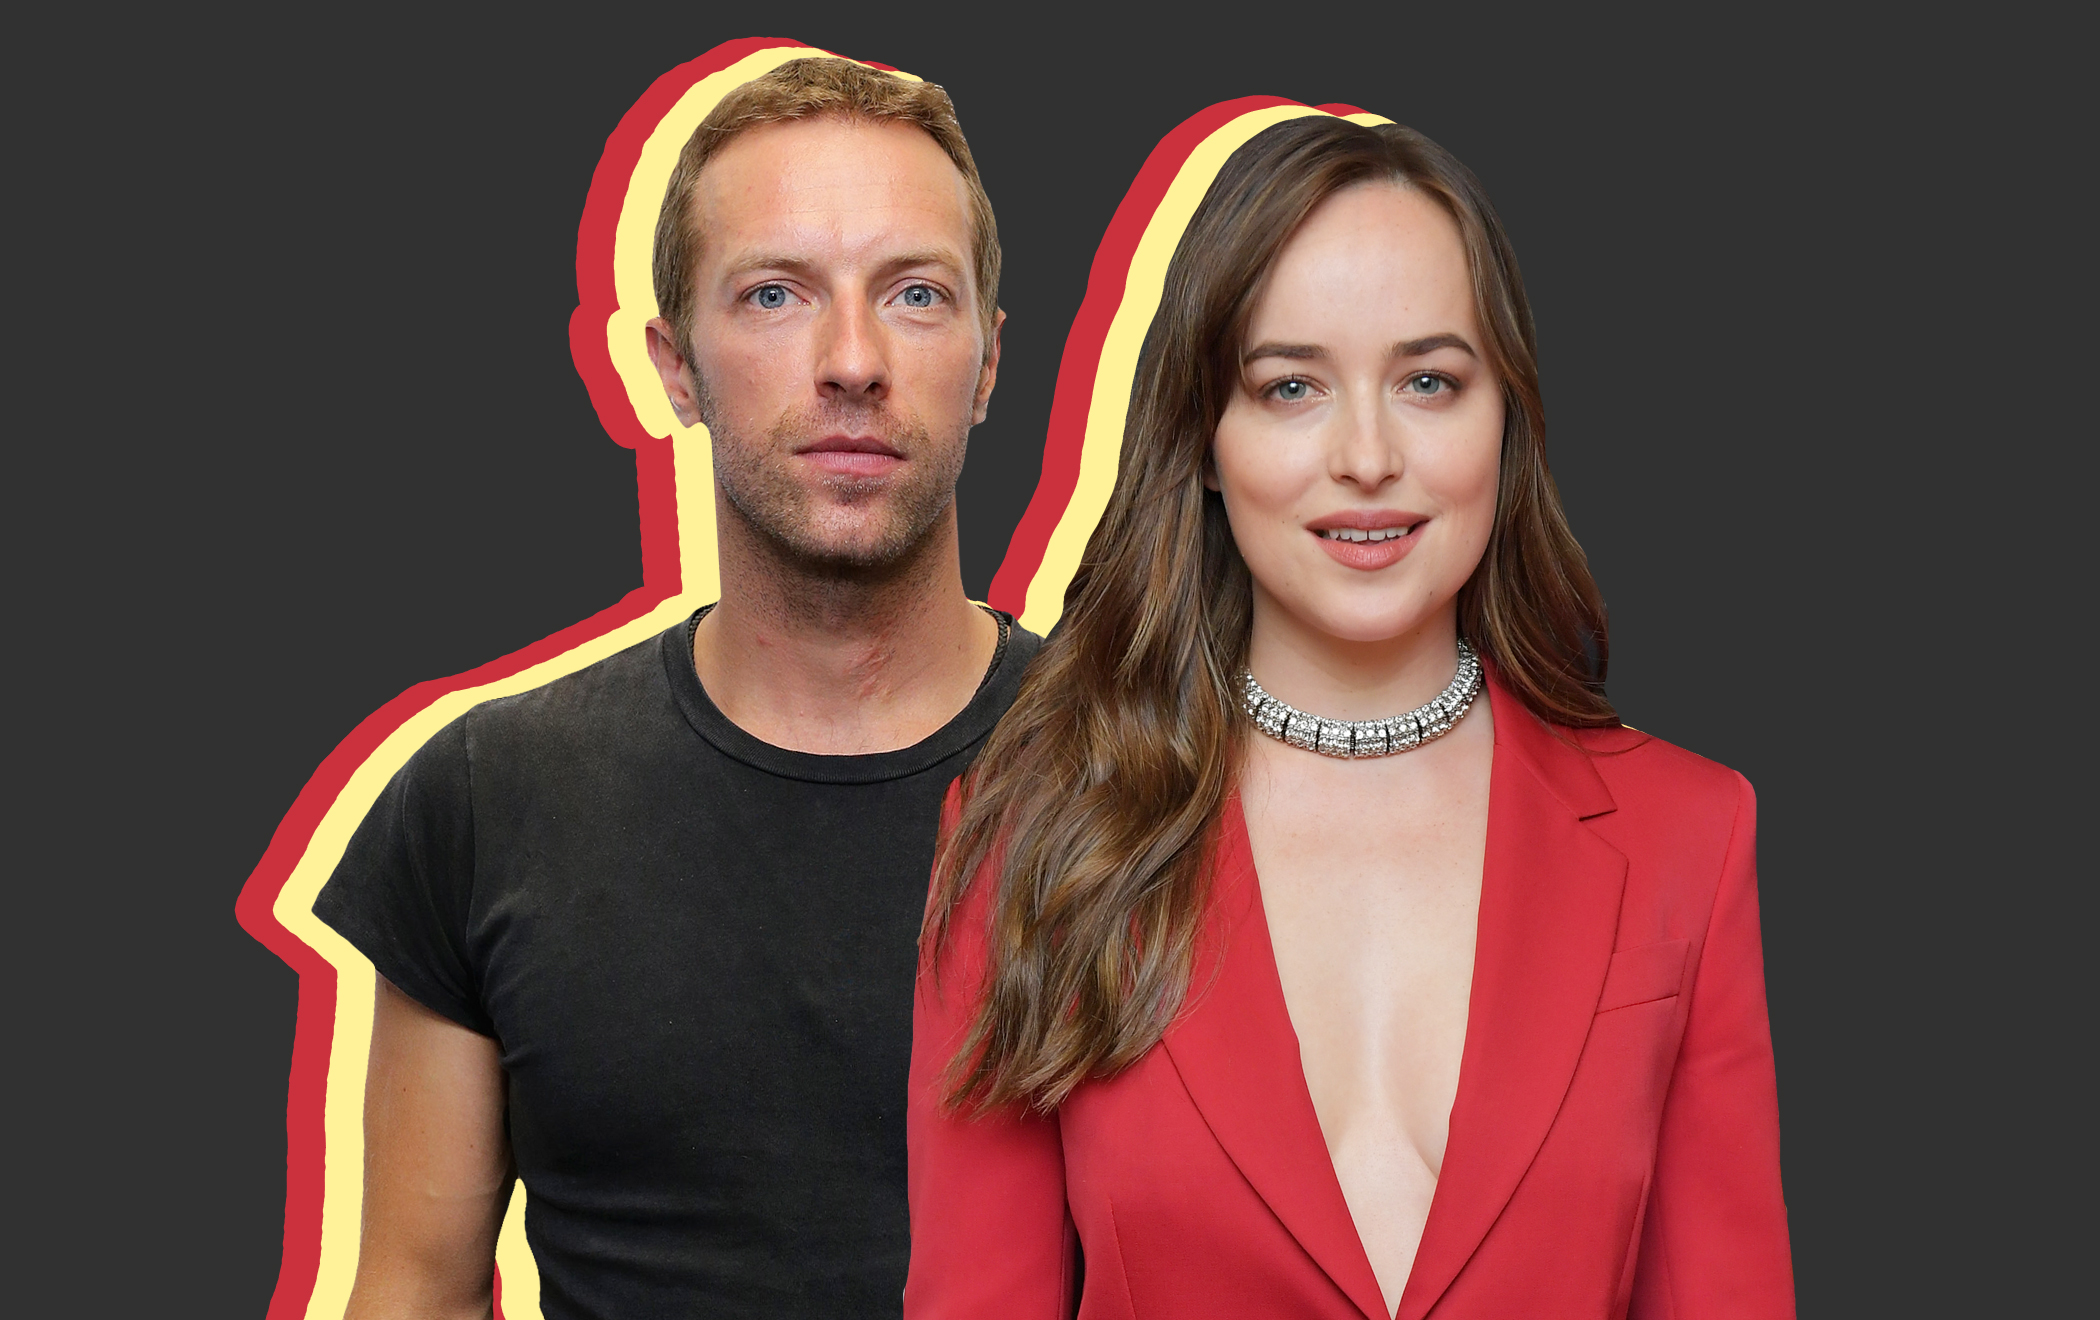 Coldplay lead singer dating updating a processor